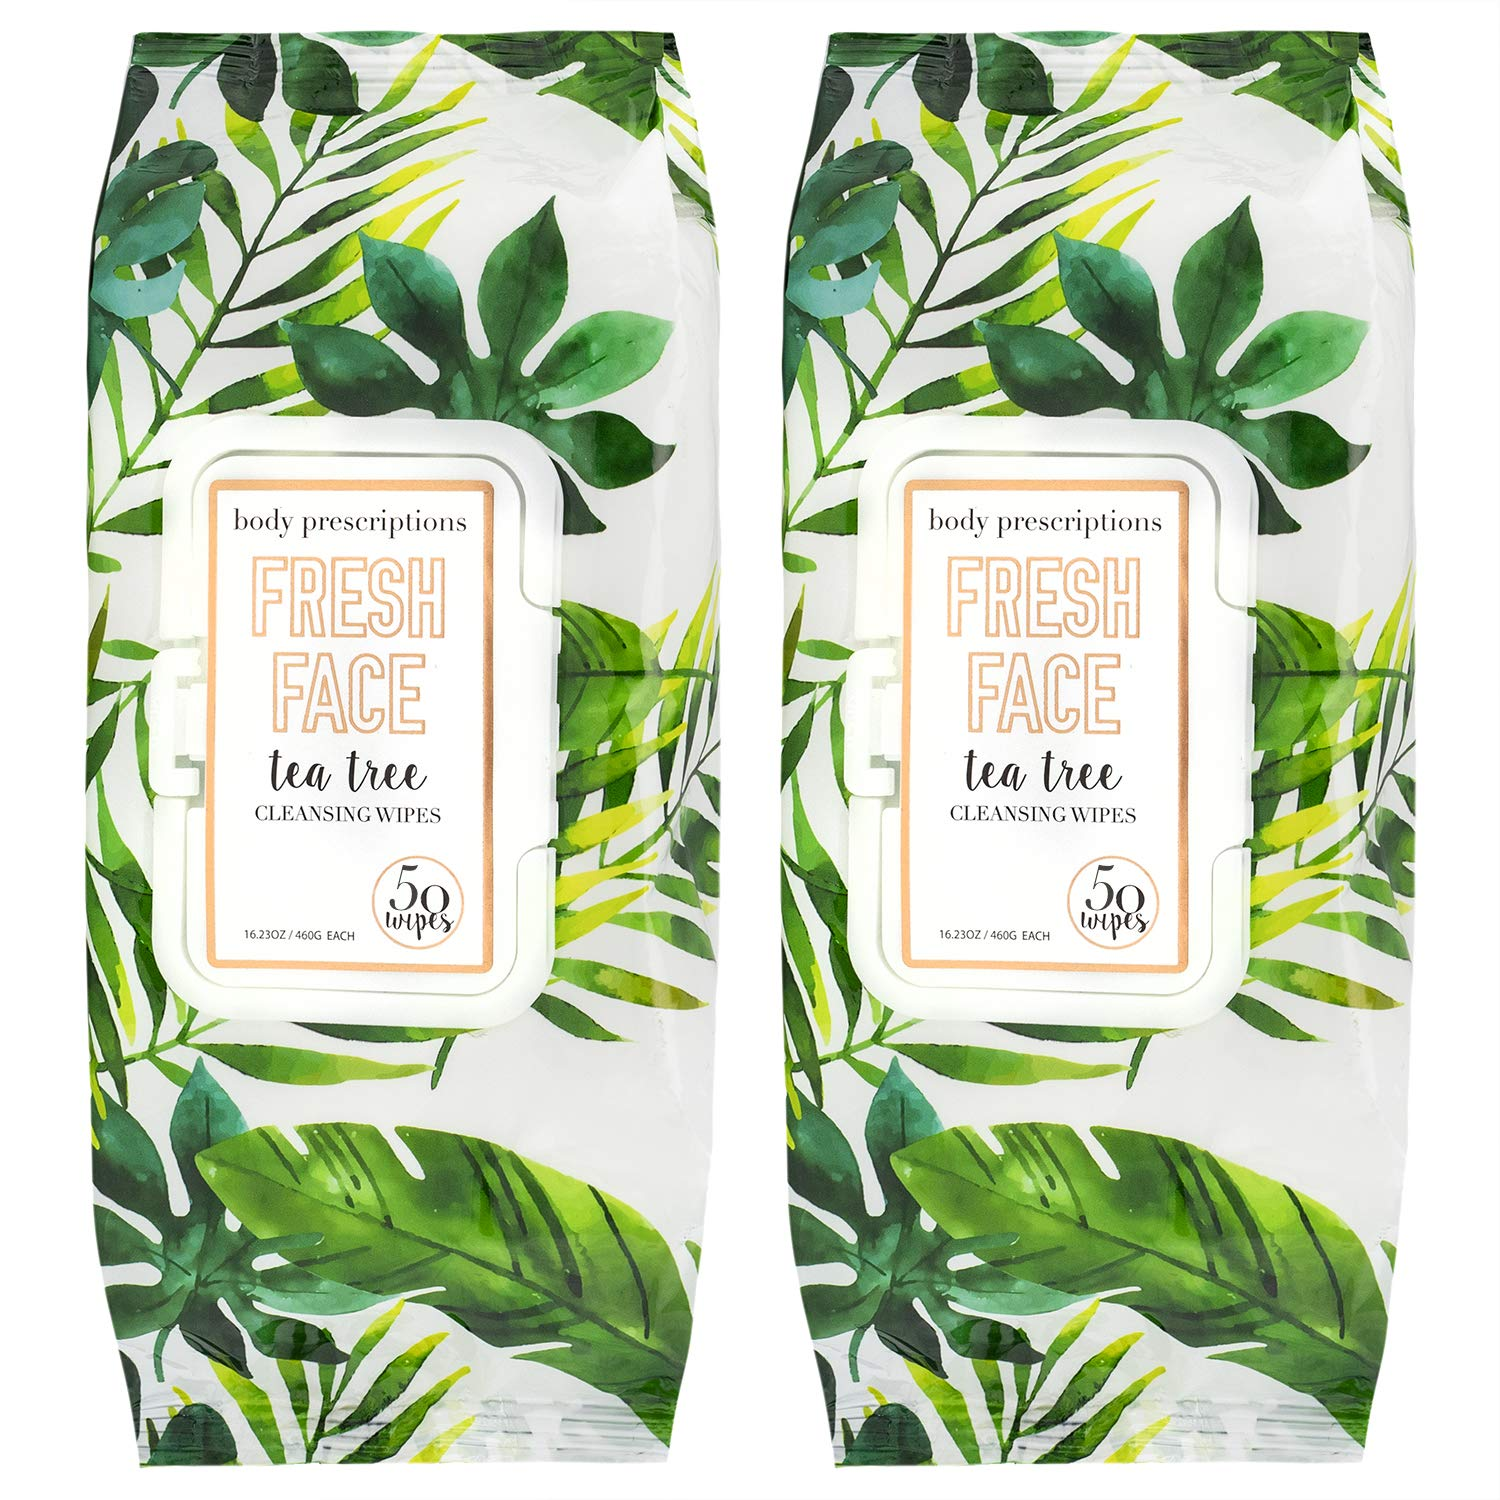 Body Prescriptions Makeup Remover Wipes Bulk Pack of 2, 120 Facial Cleaning Cloths Removes Makeup Mascara Dirt and Oil, Flip Top